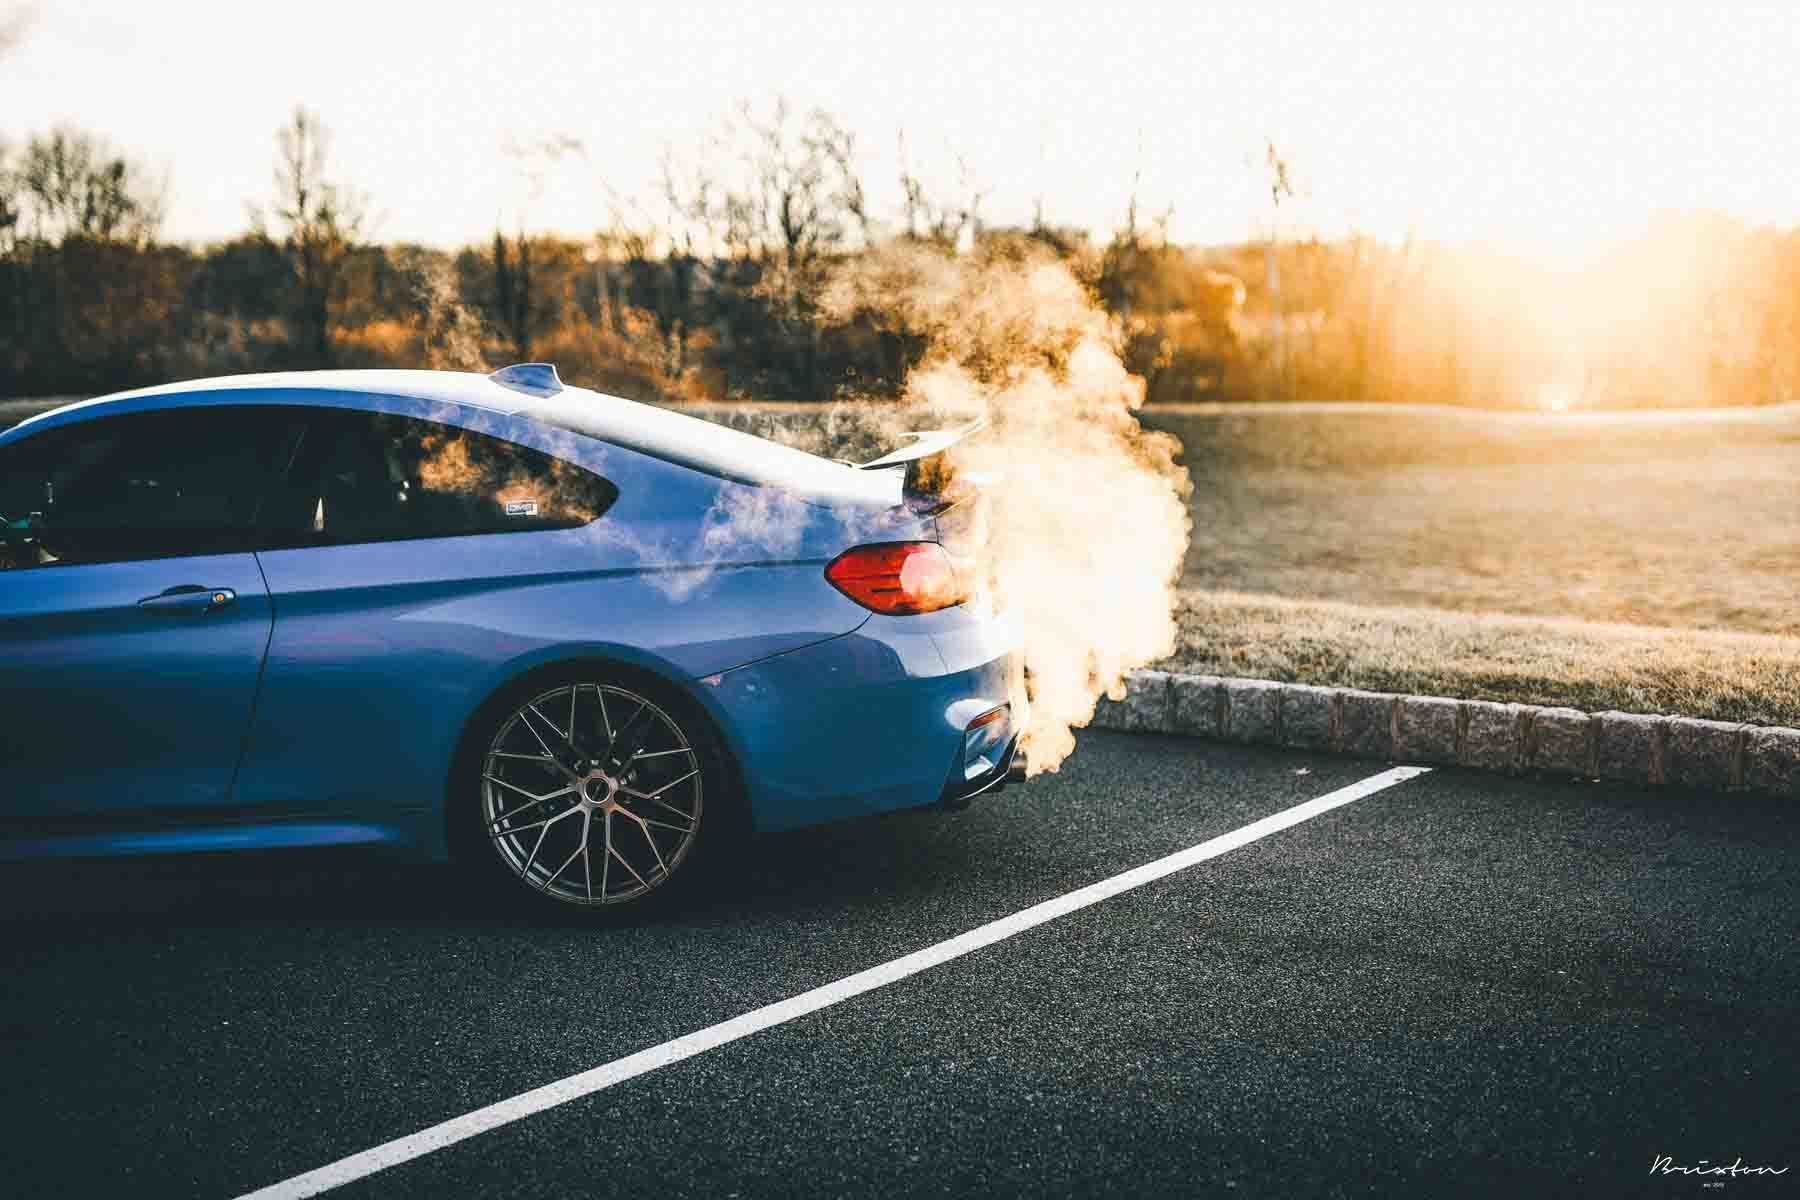 images-products-1-3019-232975307-yas-marina-blue-bmw-f82-m4-brixton-forged-cm10-radial-forged-brushed-gloss-titanium-concave-whee.jpg